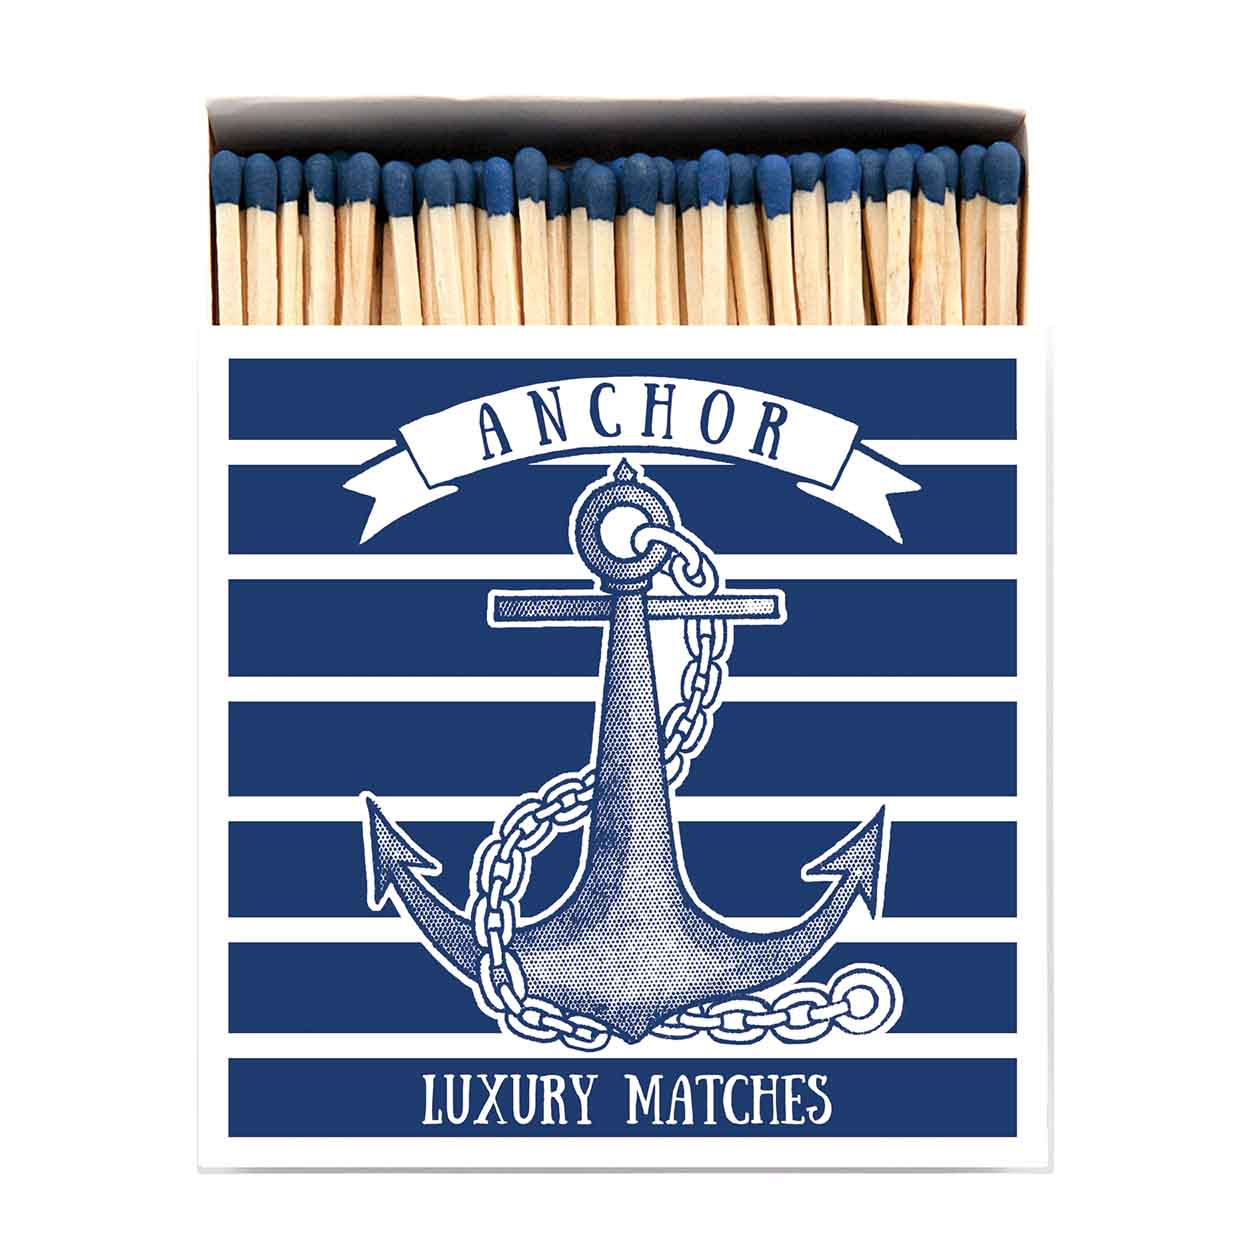 Archivist Anchor Long Luxury Matches In A Square Box